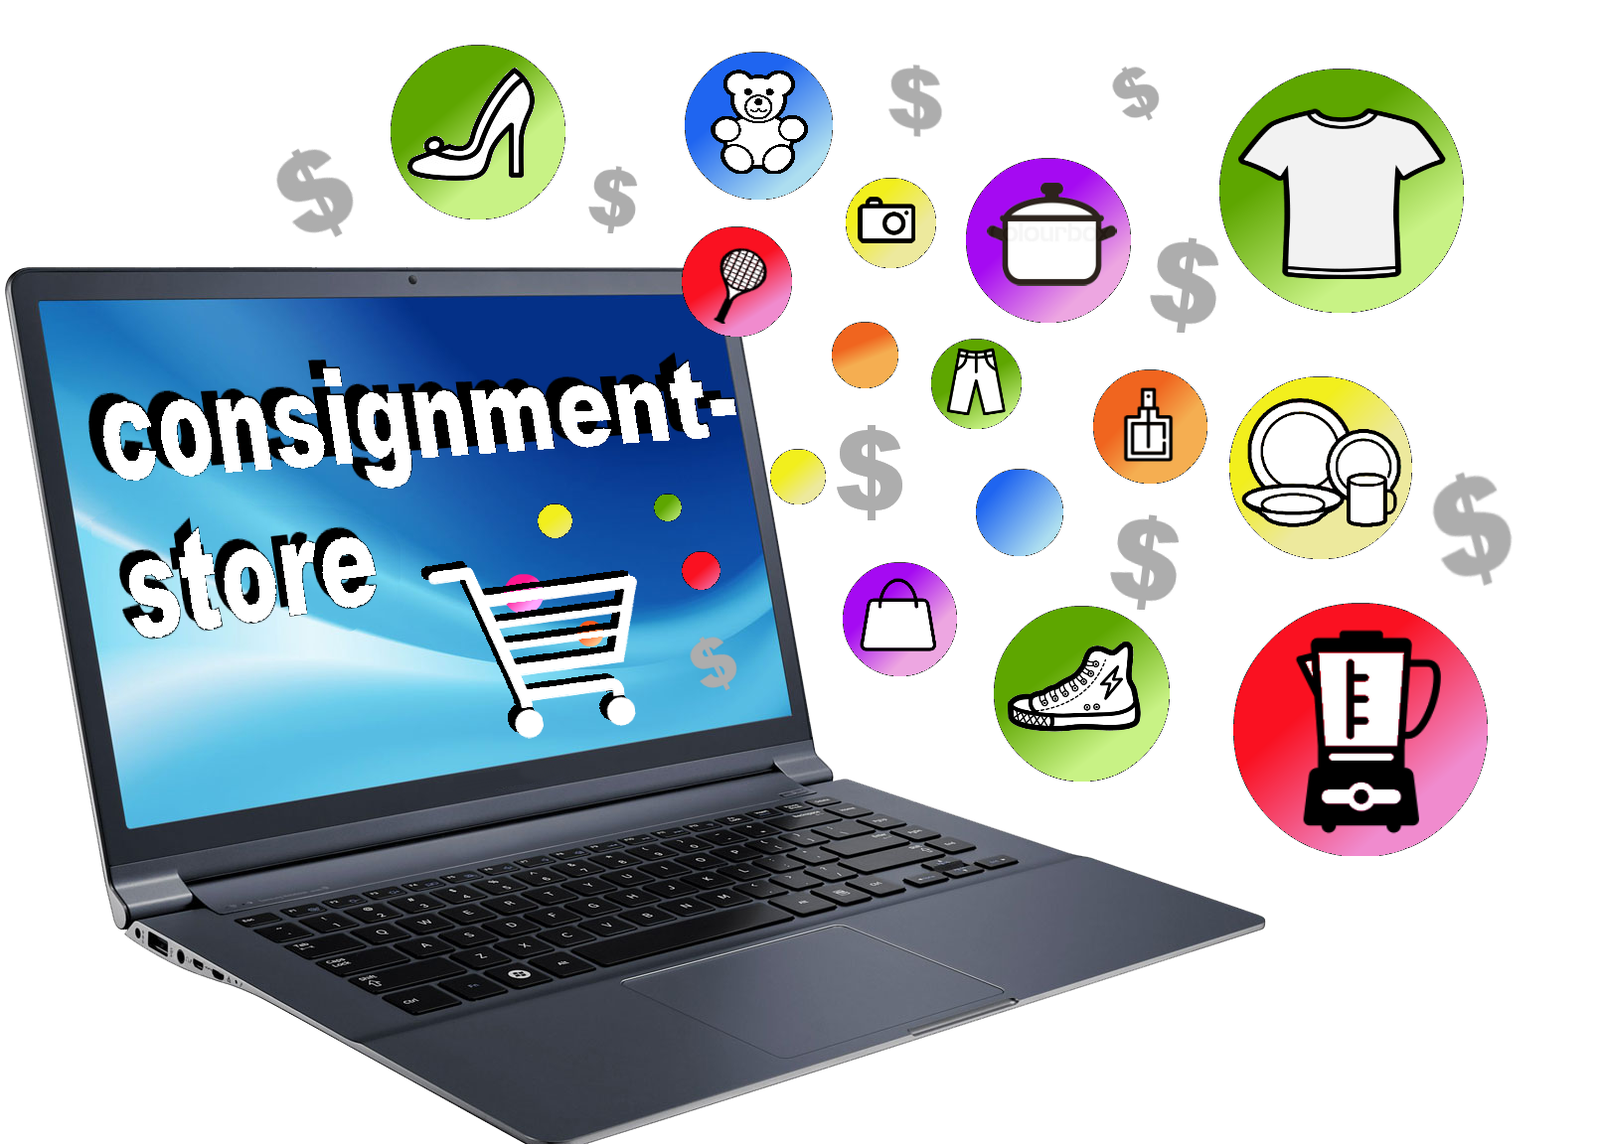 Consignment-Store